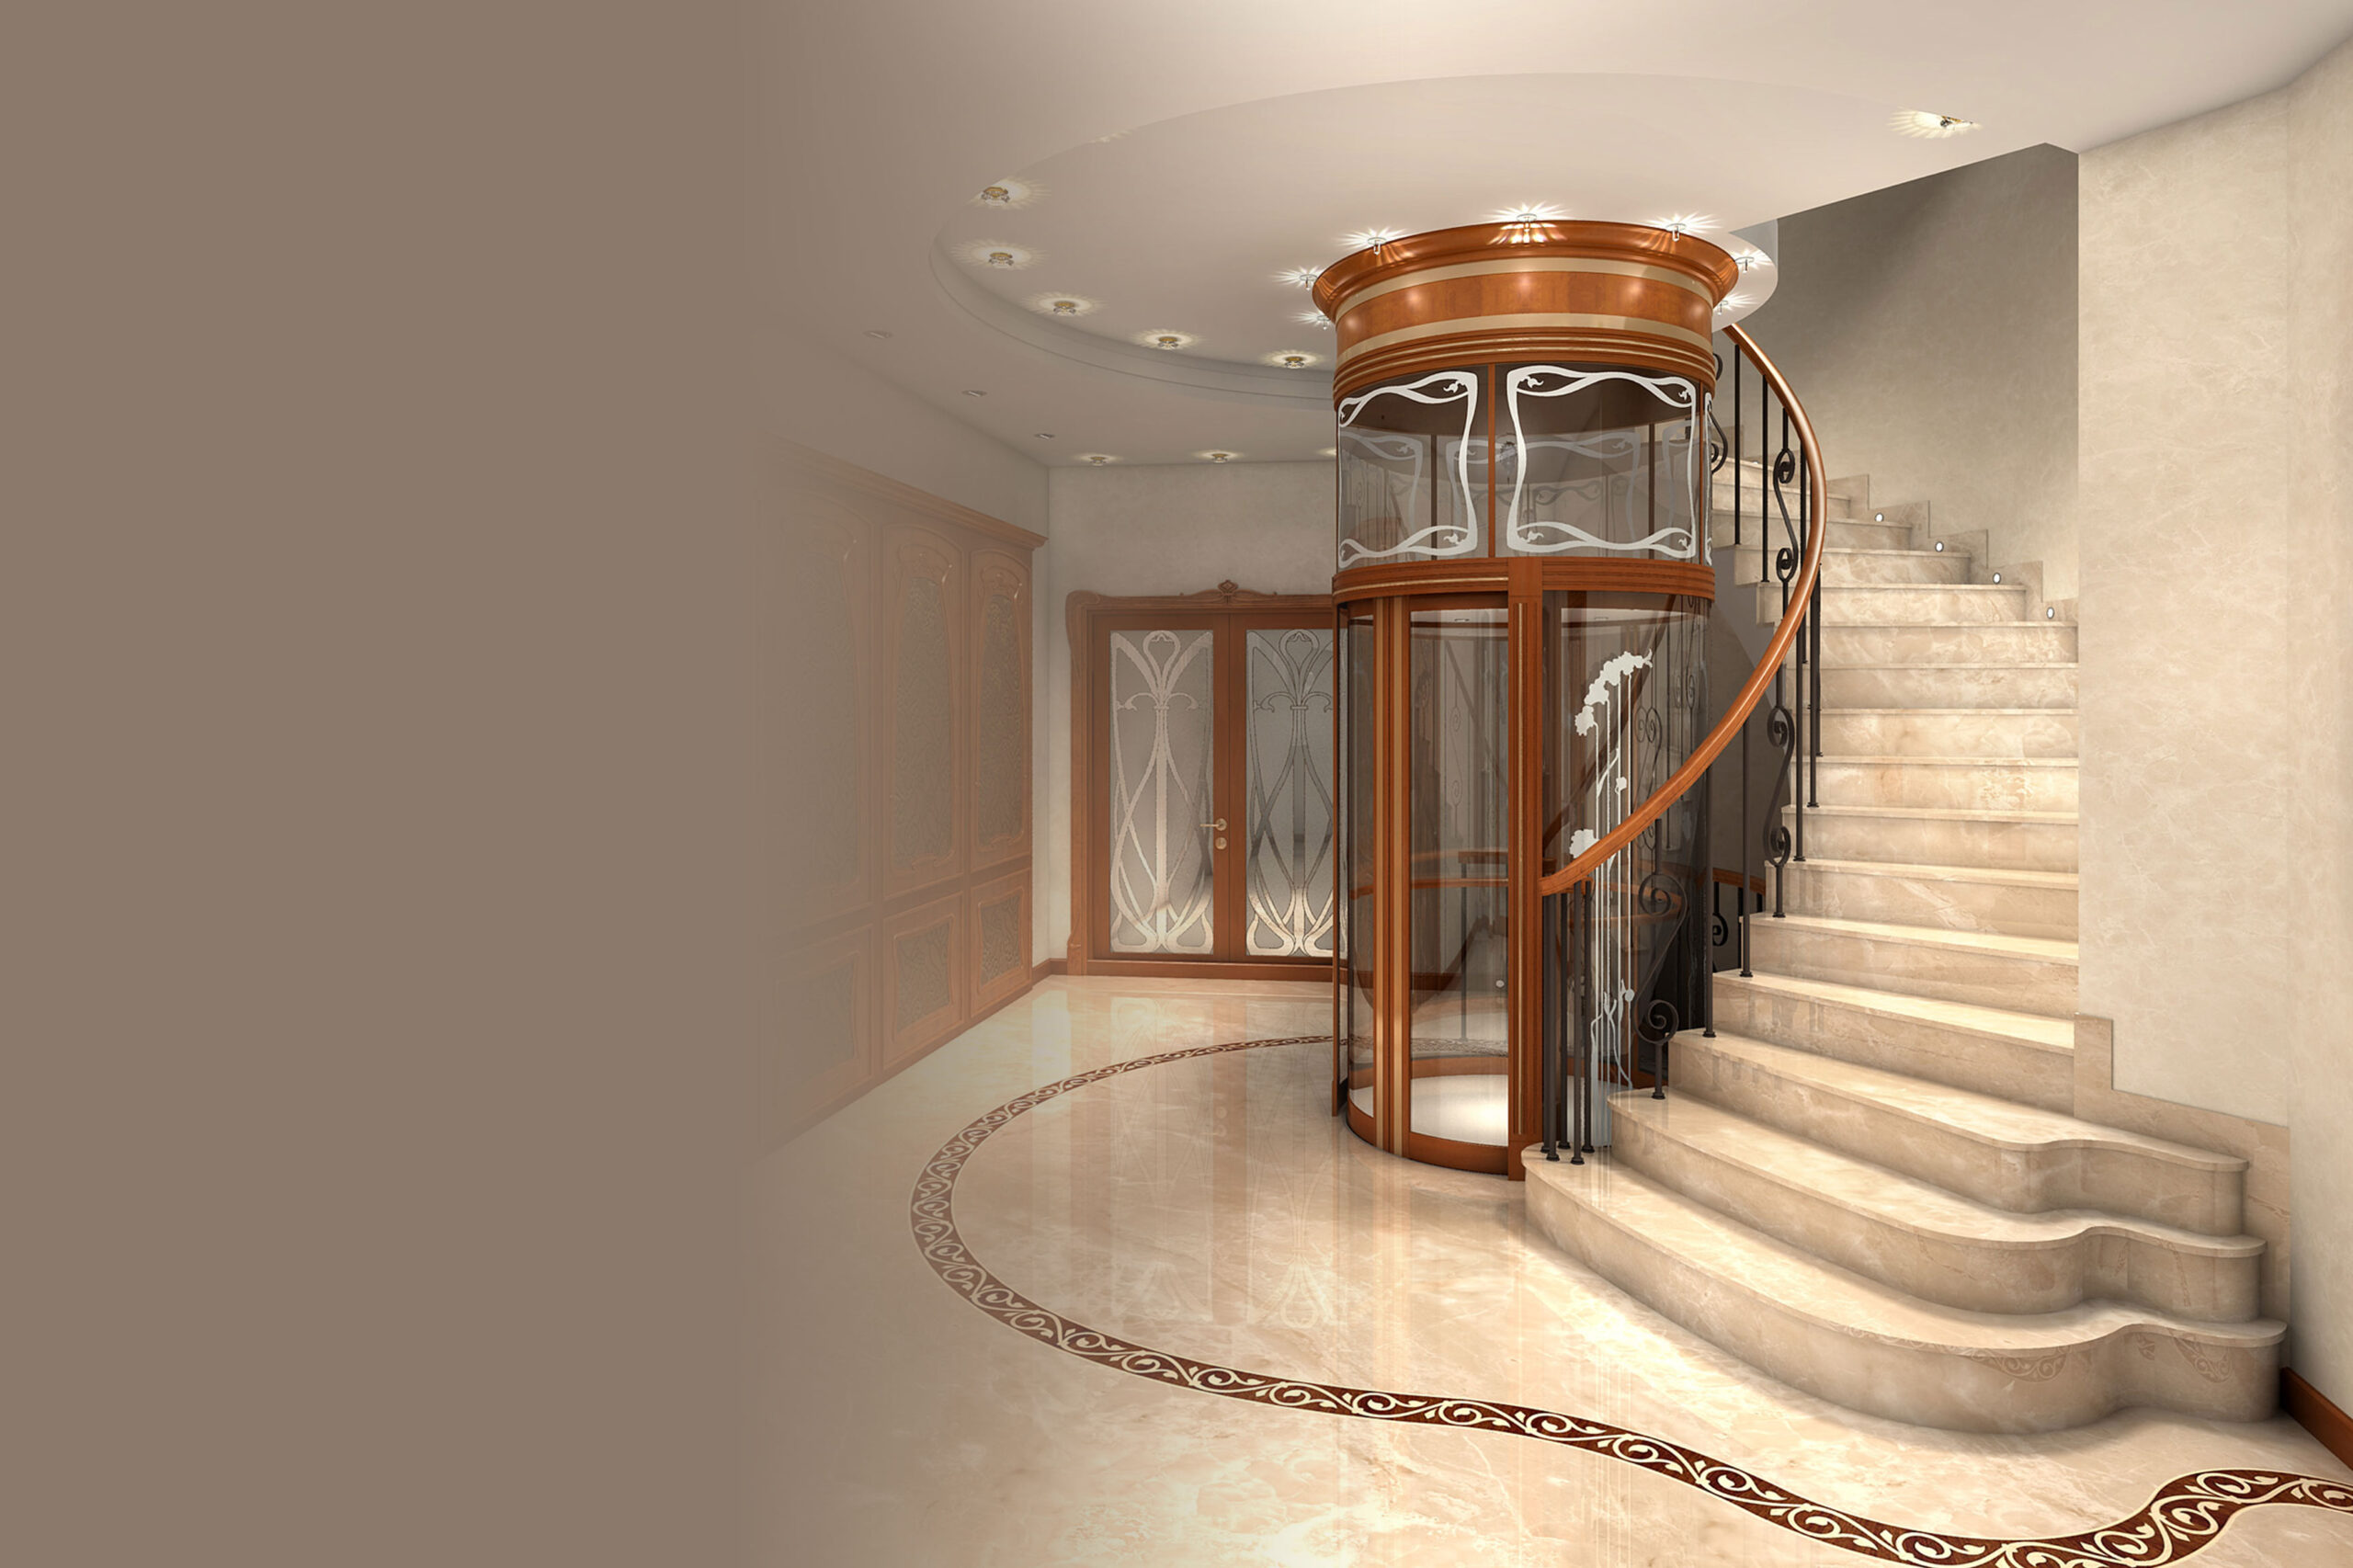 Stair Lifts vs. In-Home Elevators – Which is Best to Install?